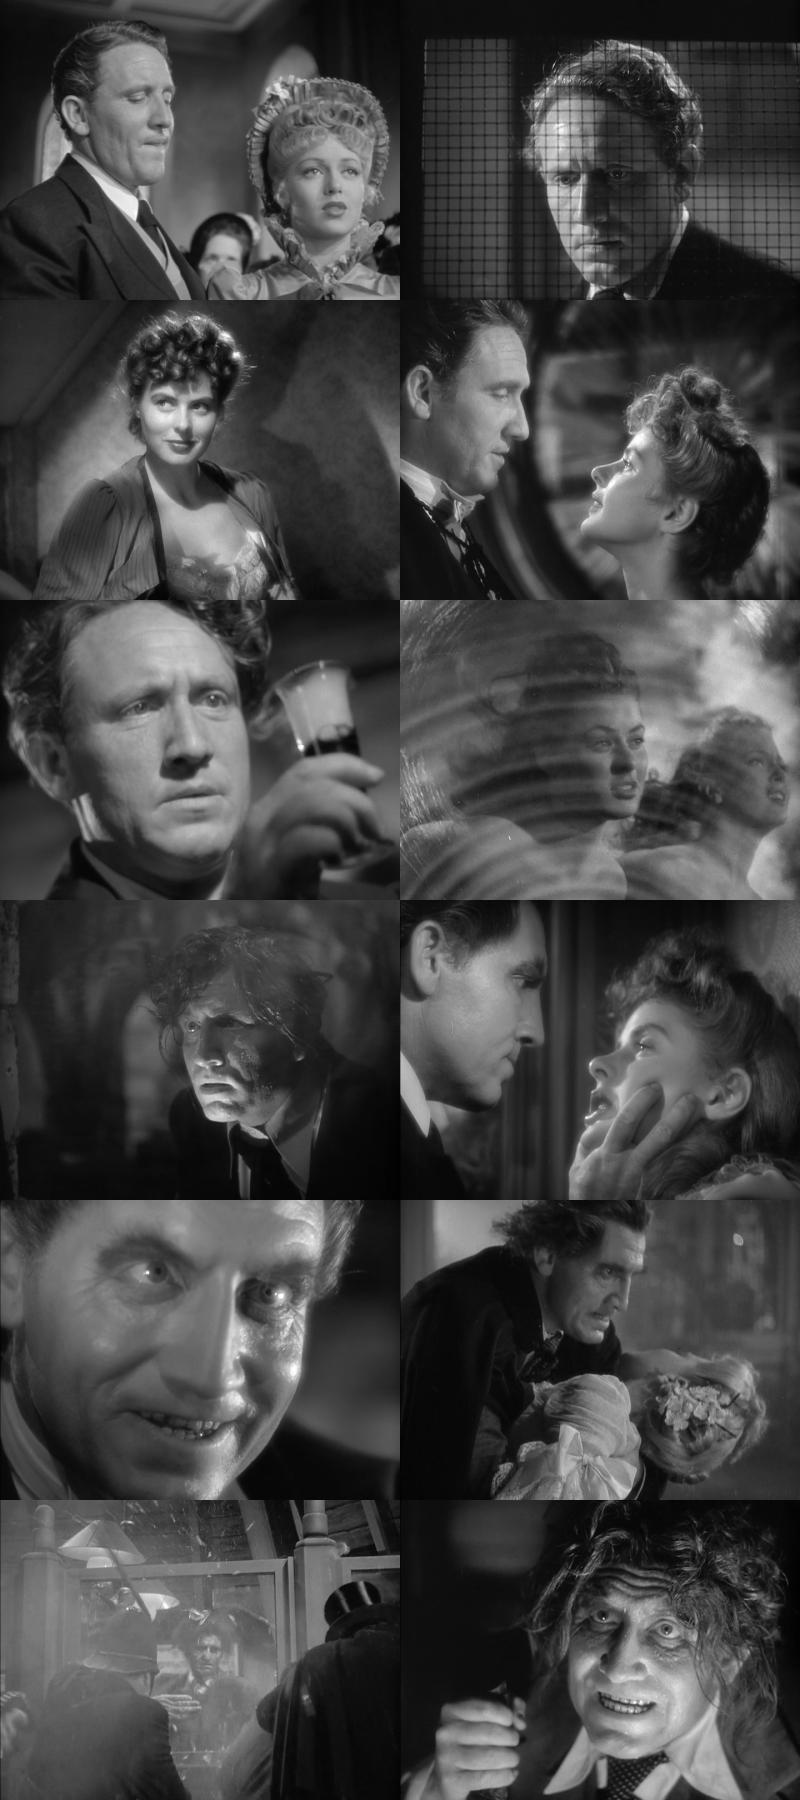 http://watershade.net/public/dr-jekyll-and-mr-hyde-1941.jpg